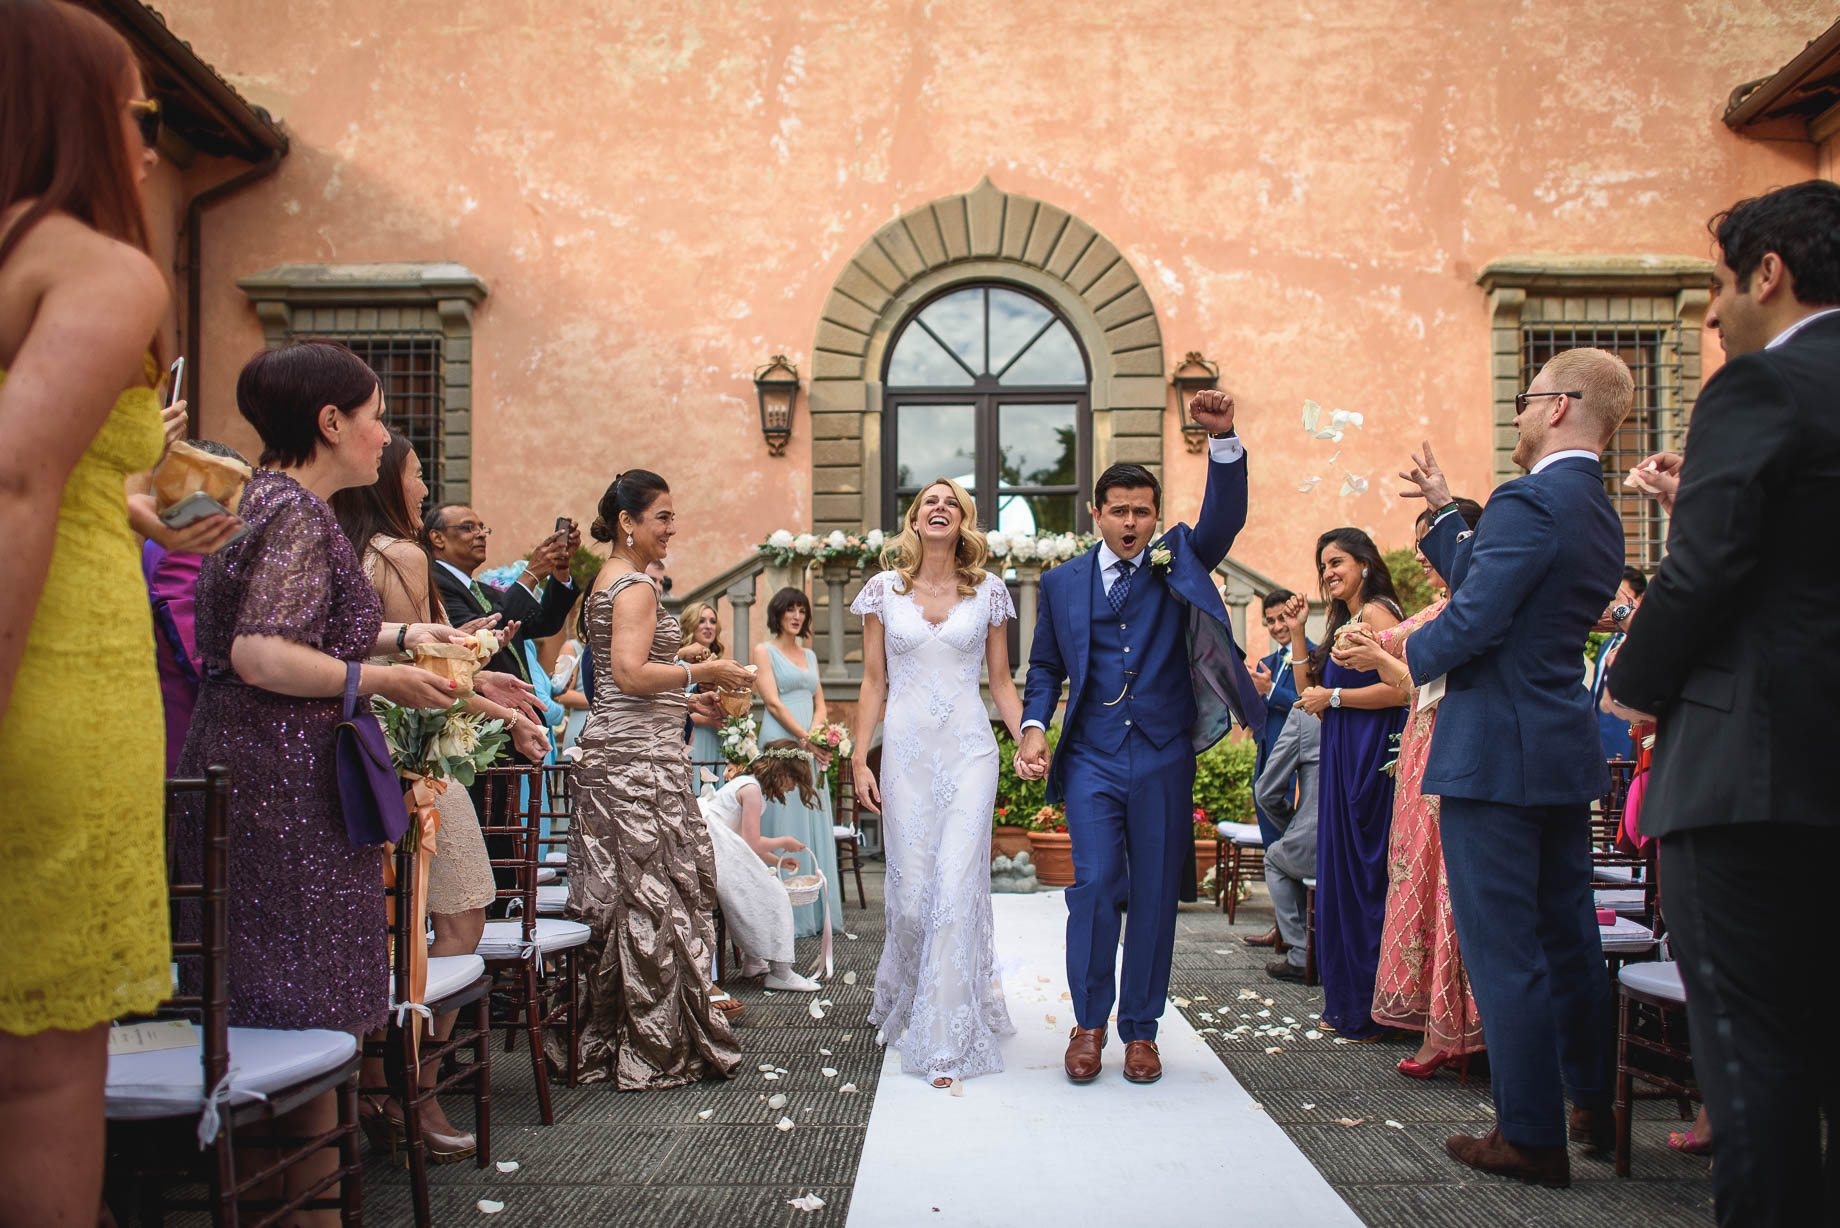 Tuscany wedding photography - Roisin and Moubin - Guy Collier Photography (113 of 251)